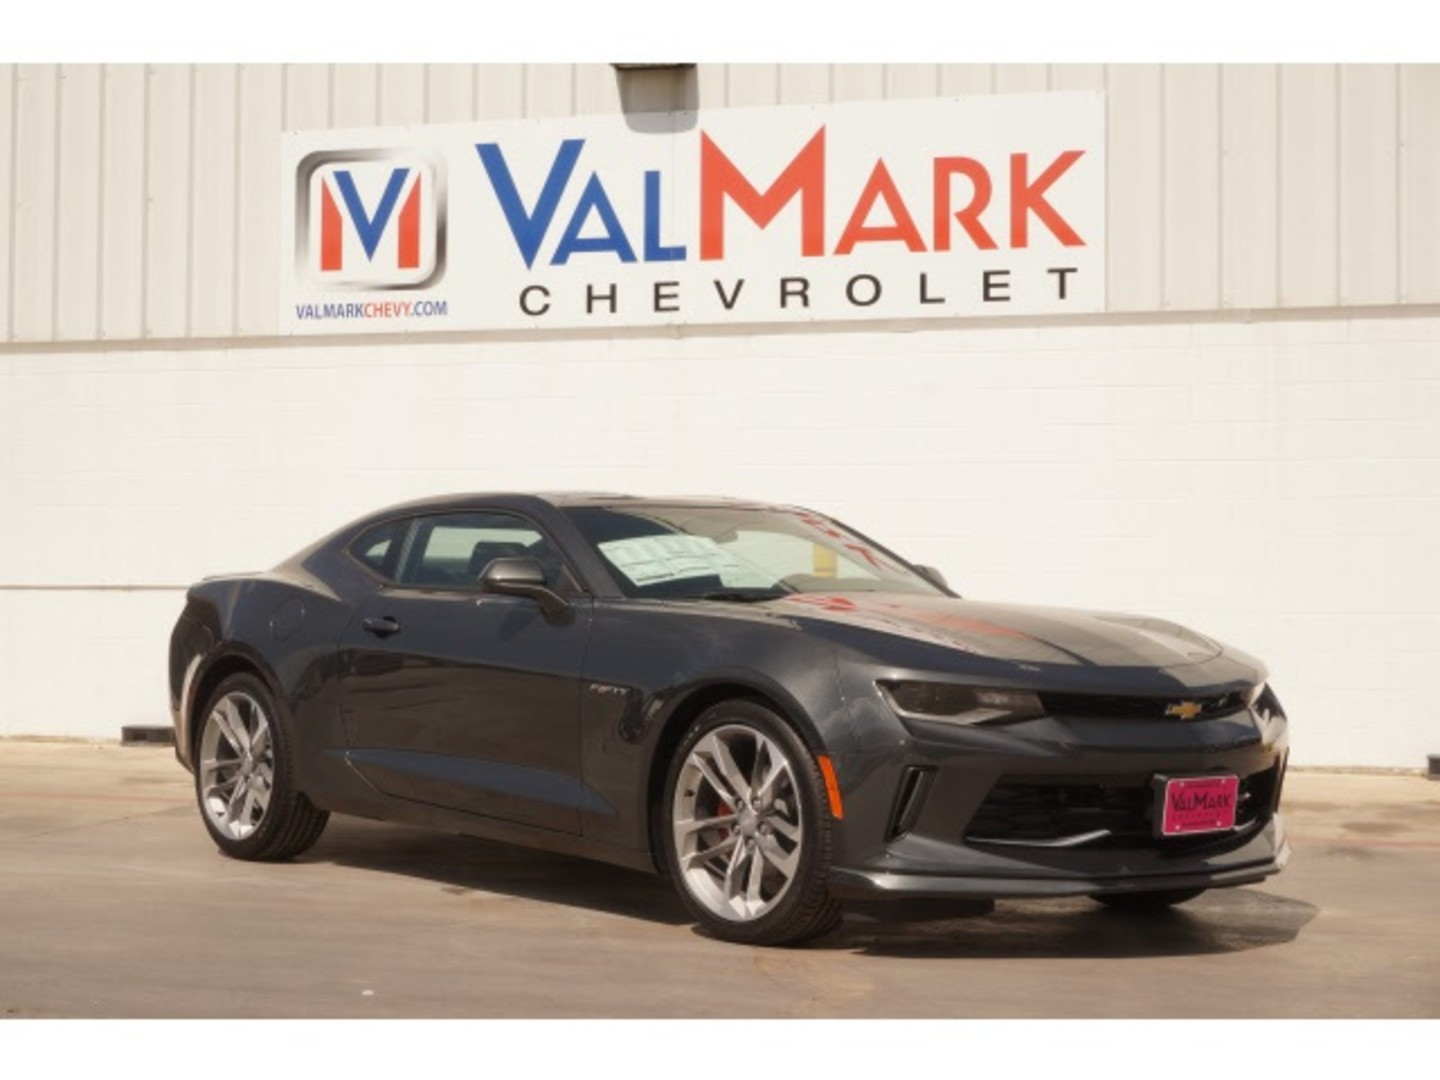 2017 chevrolet camaro lt city texas valmark chevrolet. Black Bedroom Furniture Sets. Home Design Ideas